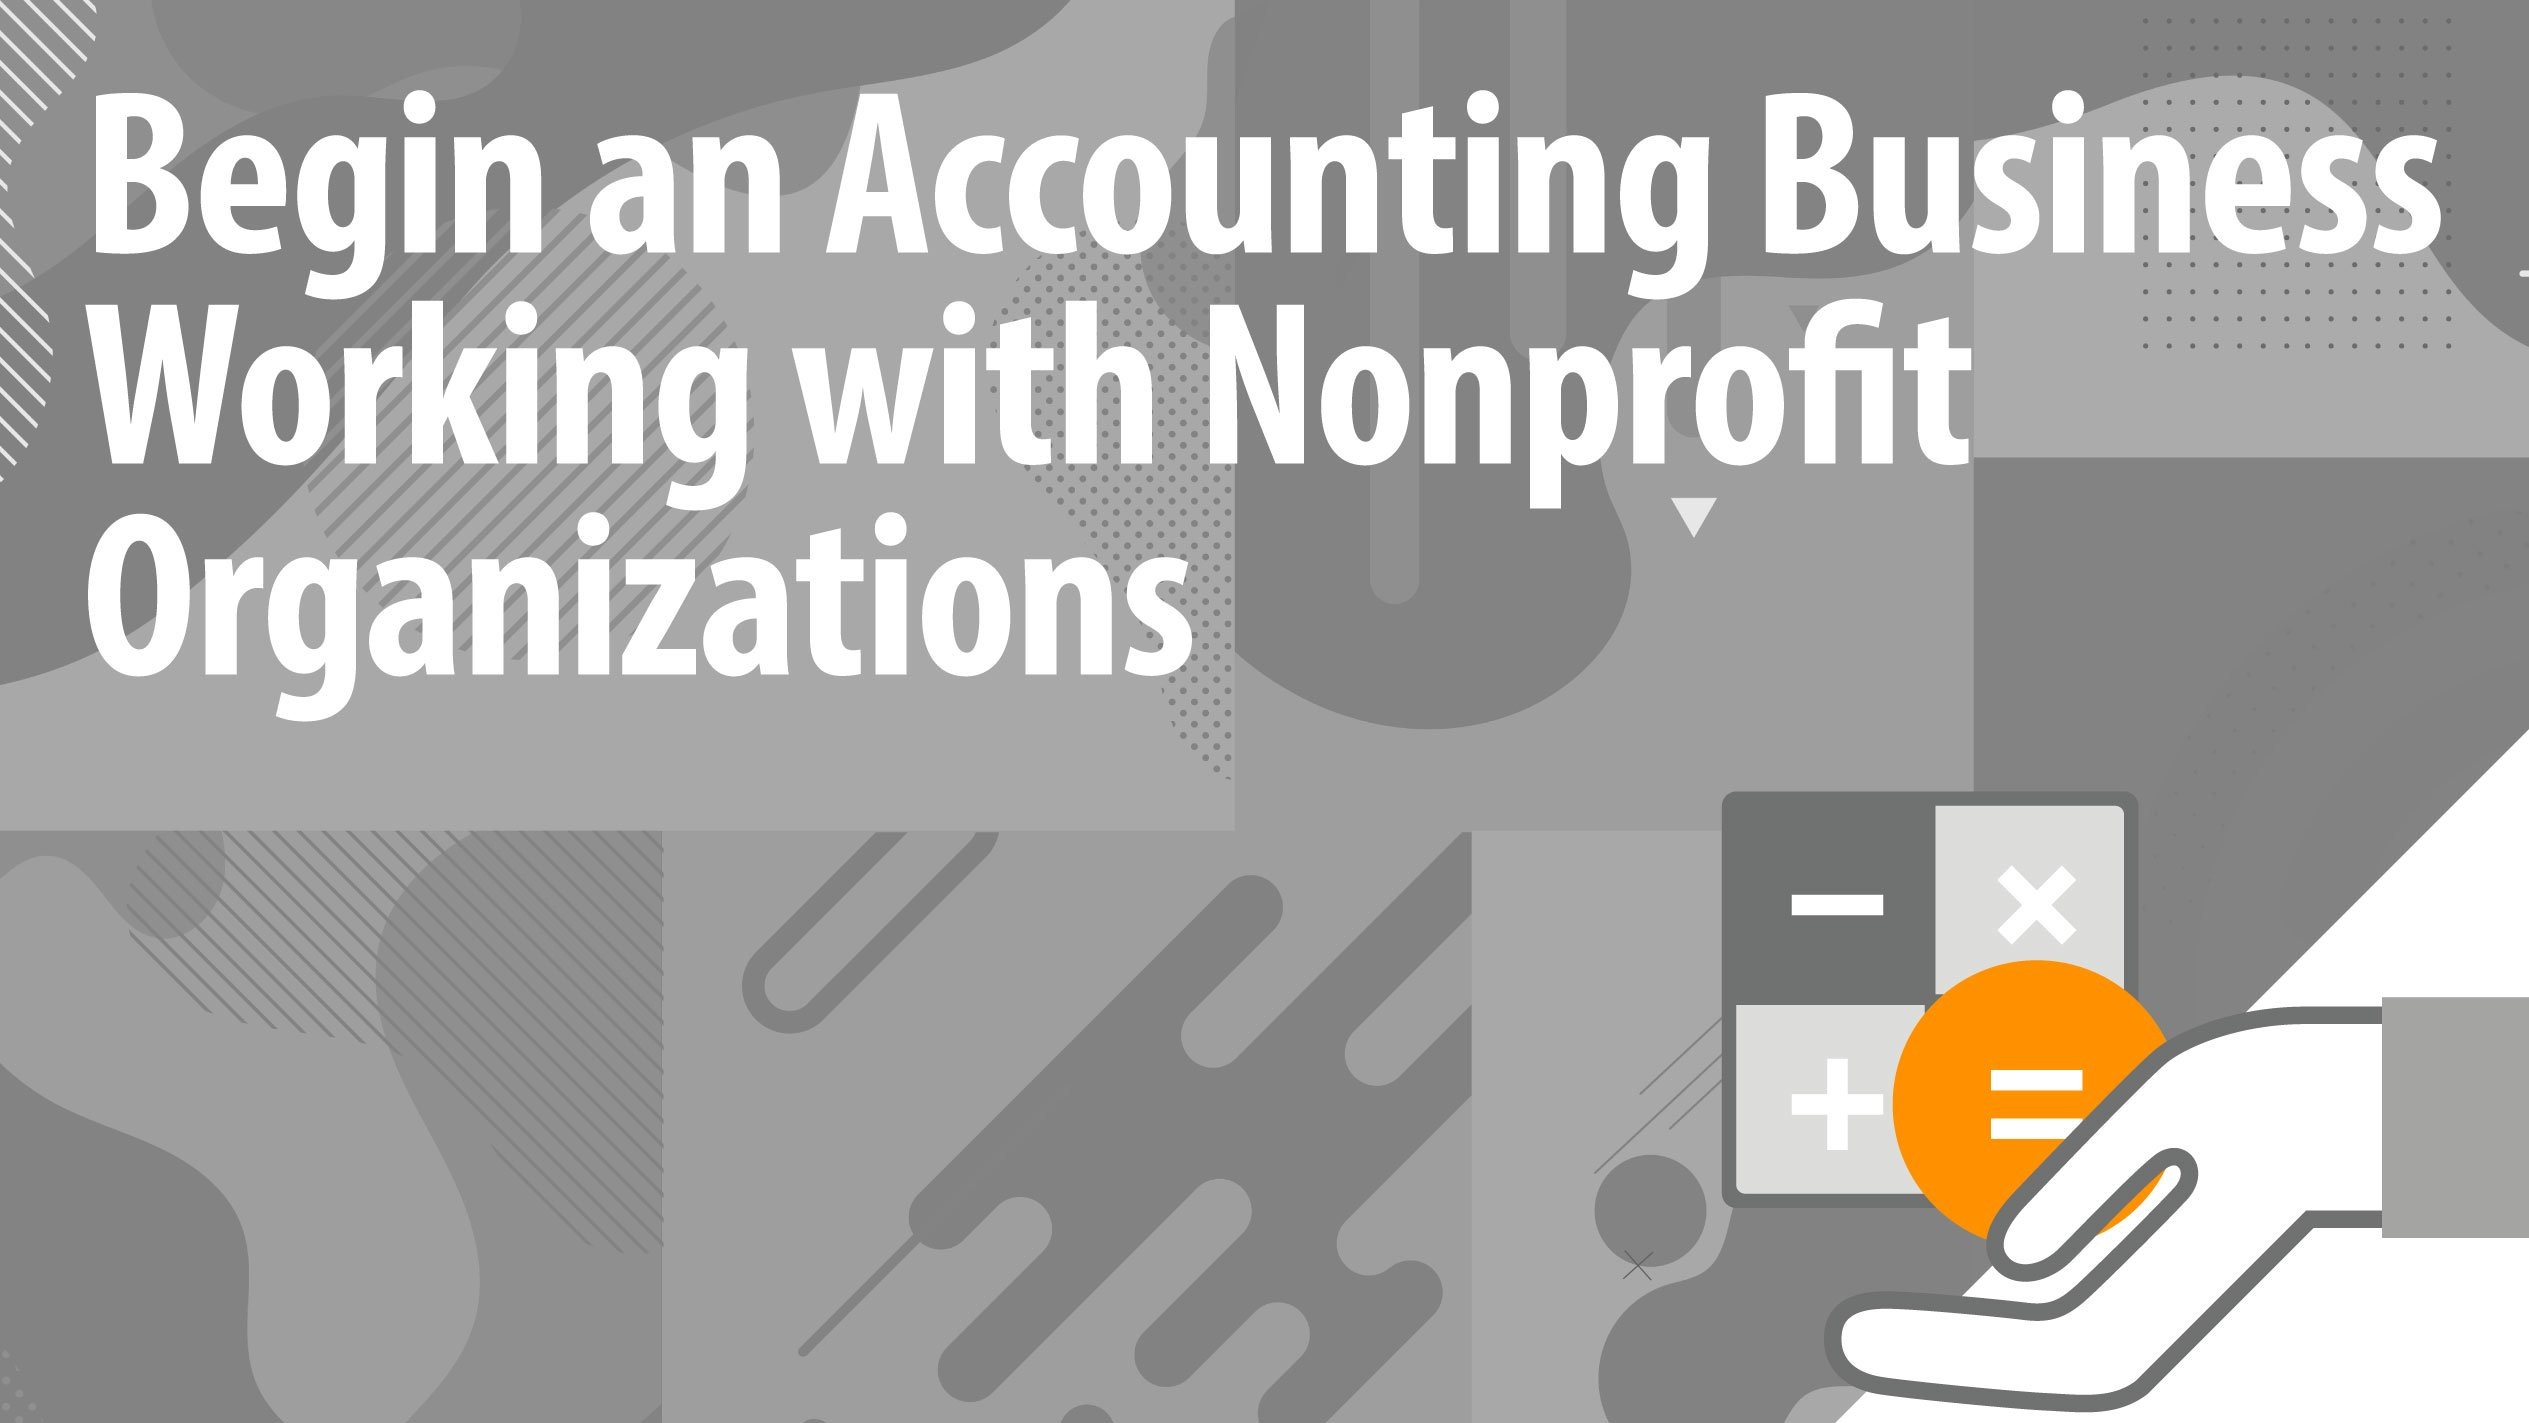 Begin an Accounting Business Working with Nonprofit Organizations